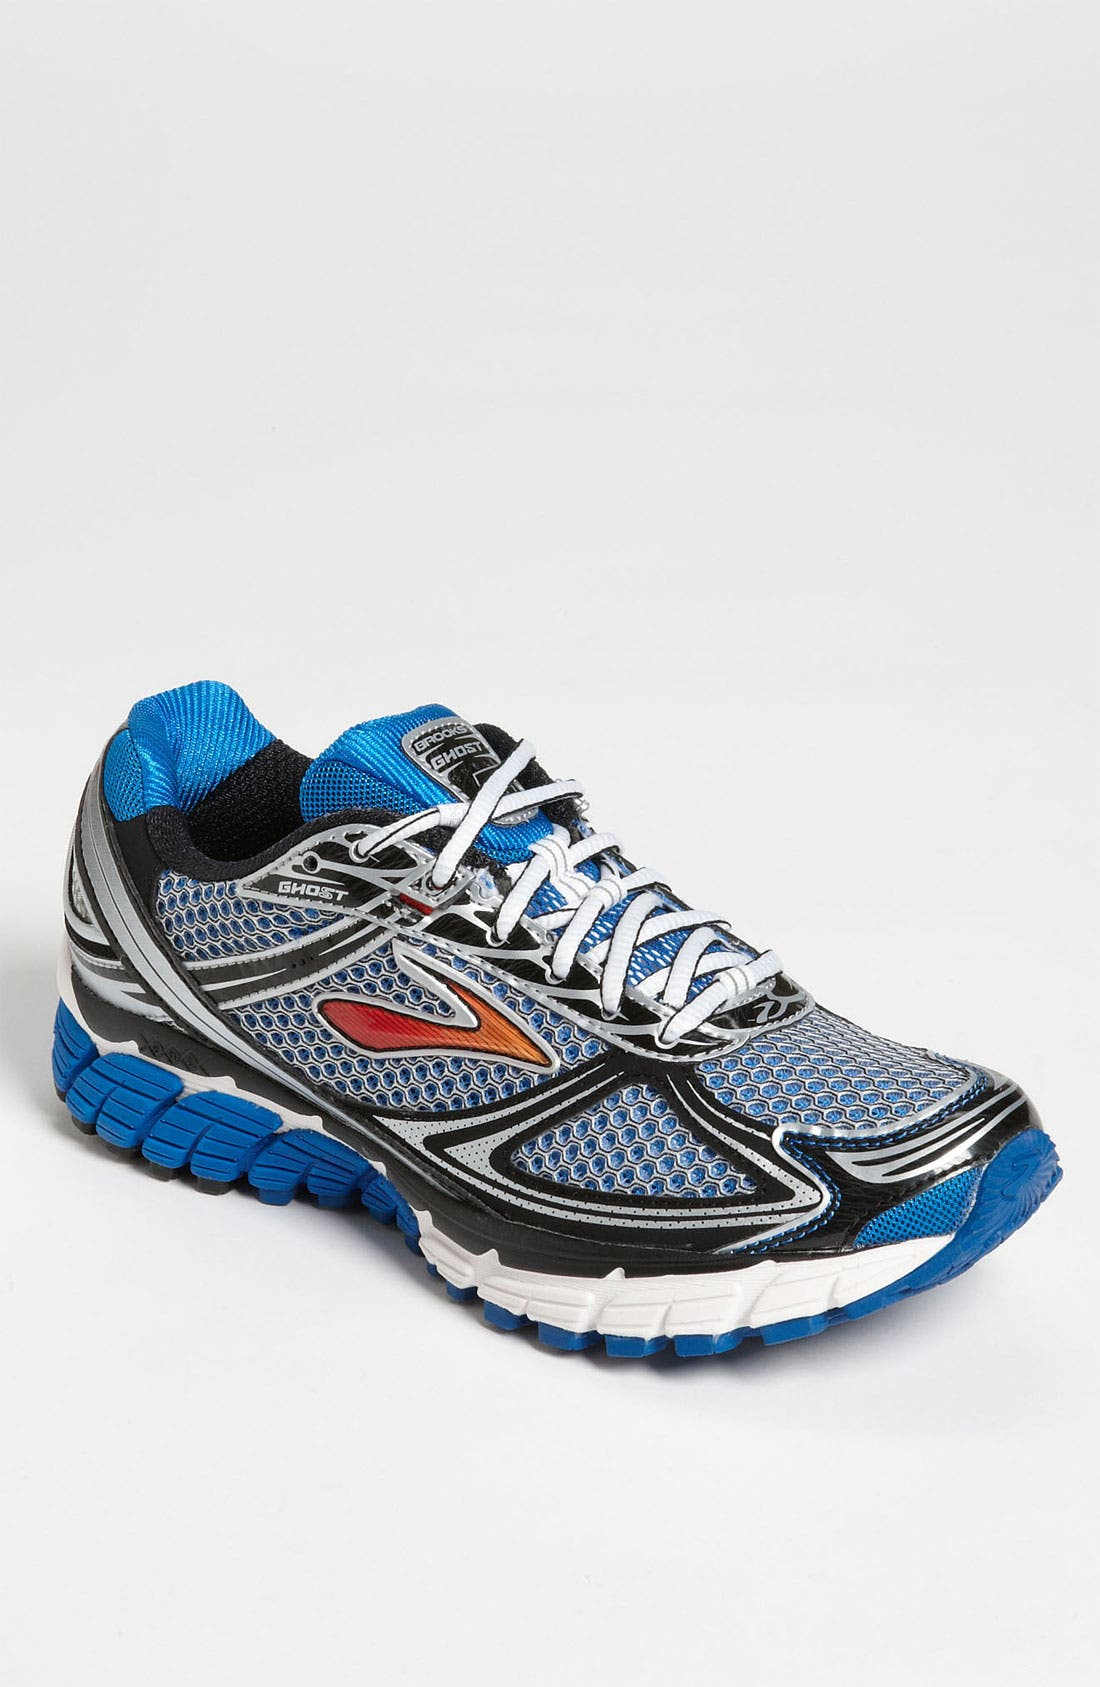 Main Image - Brooks 'Ghost 5' Running Shoe (Men) (Online Only)